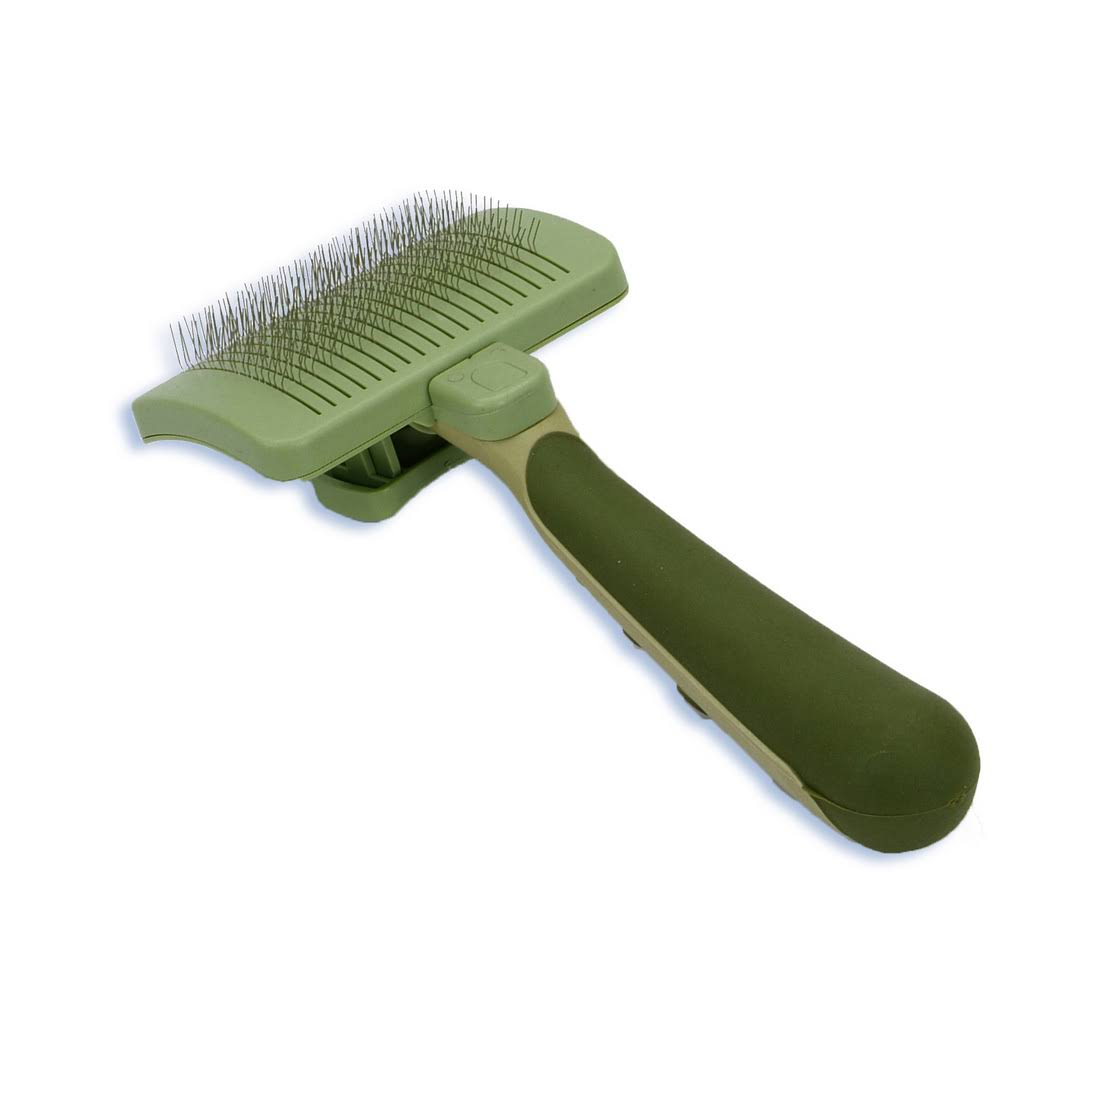 Safari Self-Cleaning Slicker Brush for Cats - Green